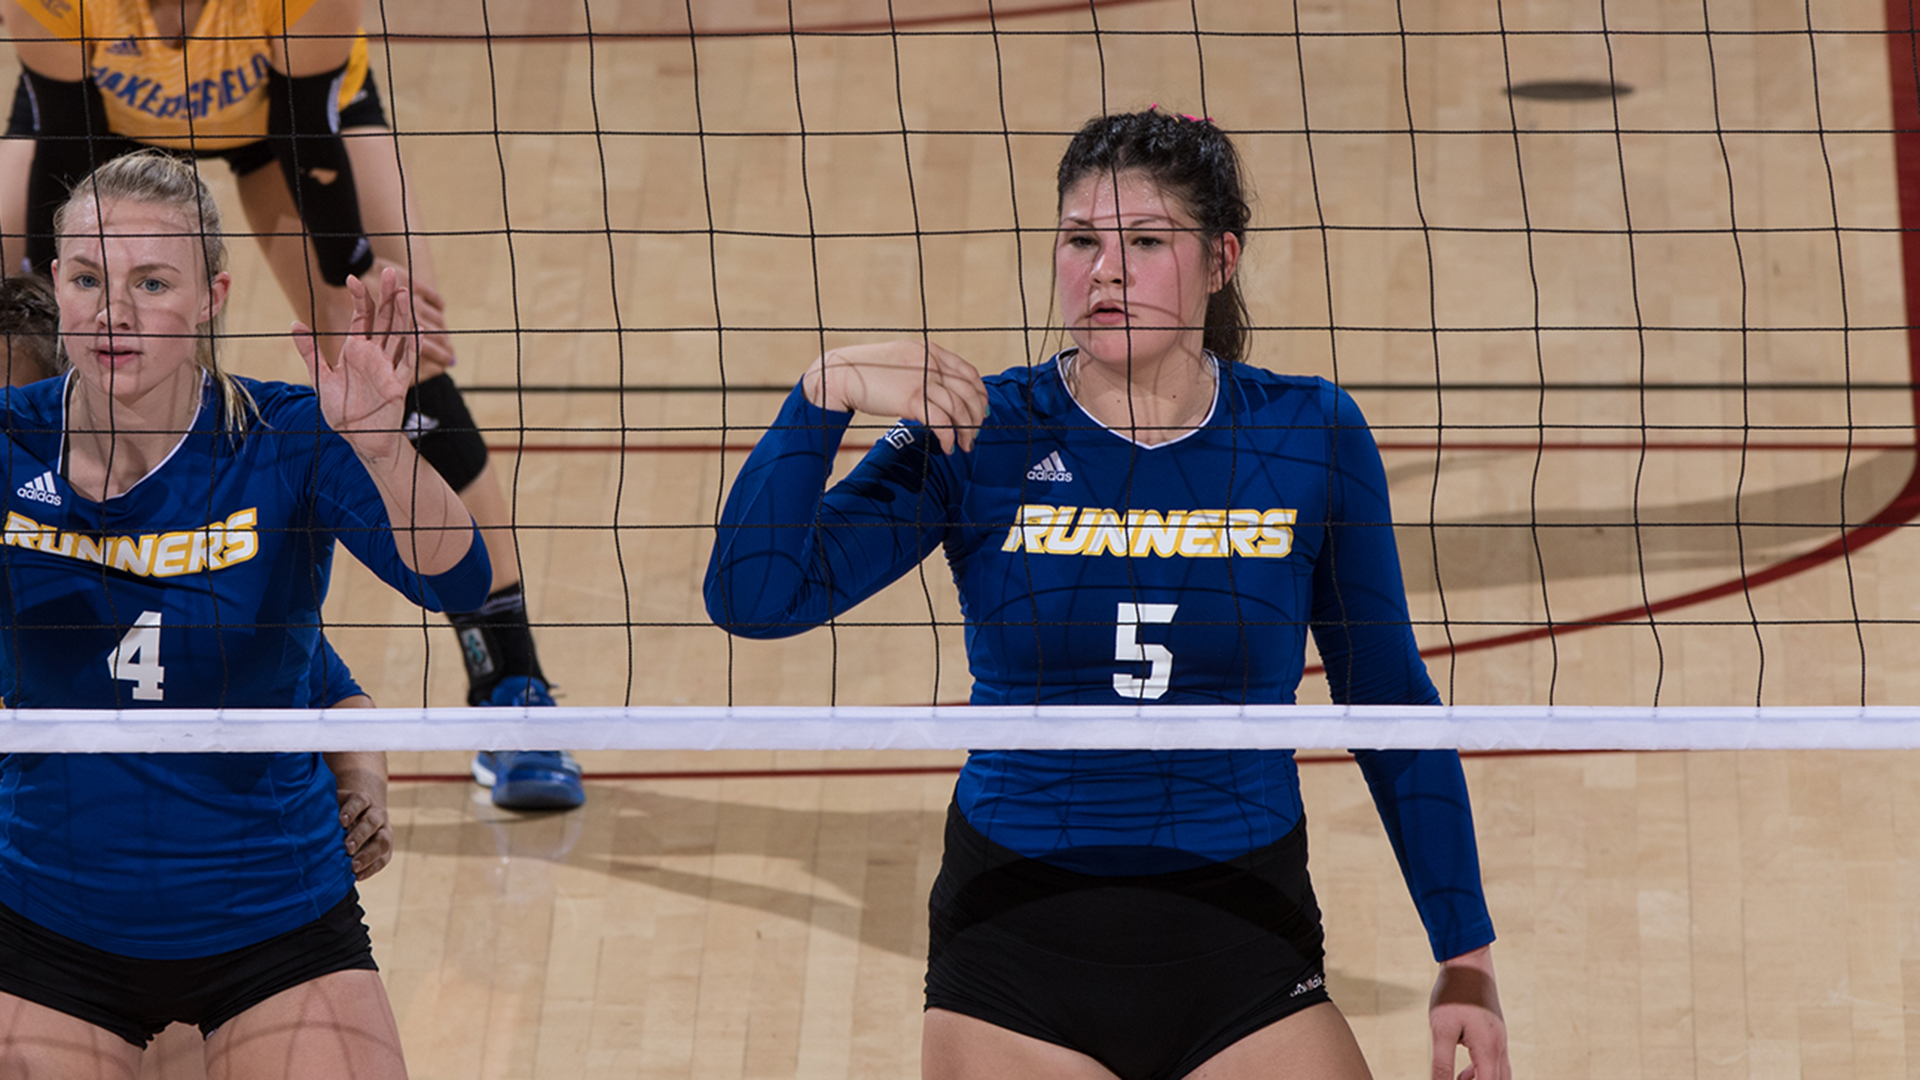 Aleksandra Djordjevic Women S Volleyball California State University At Bakersfield Athletics